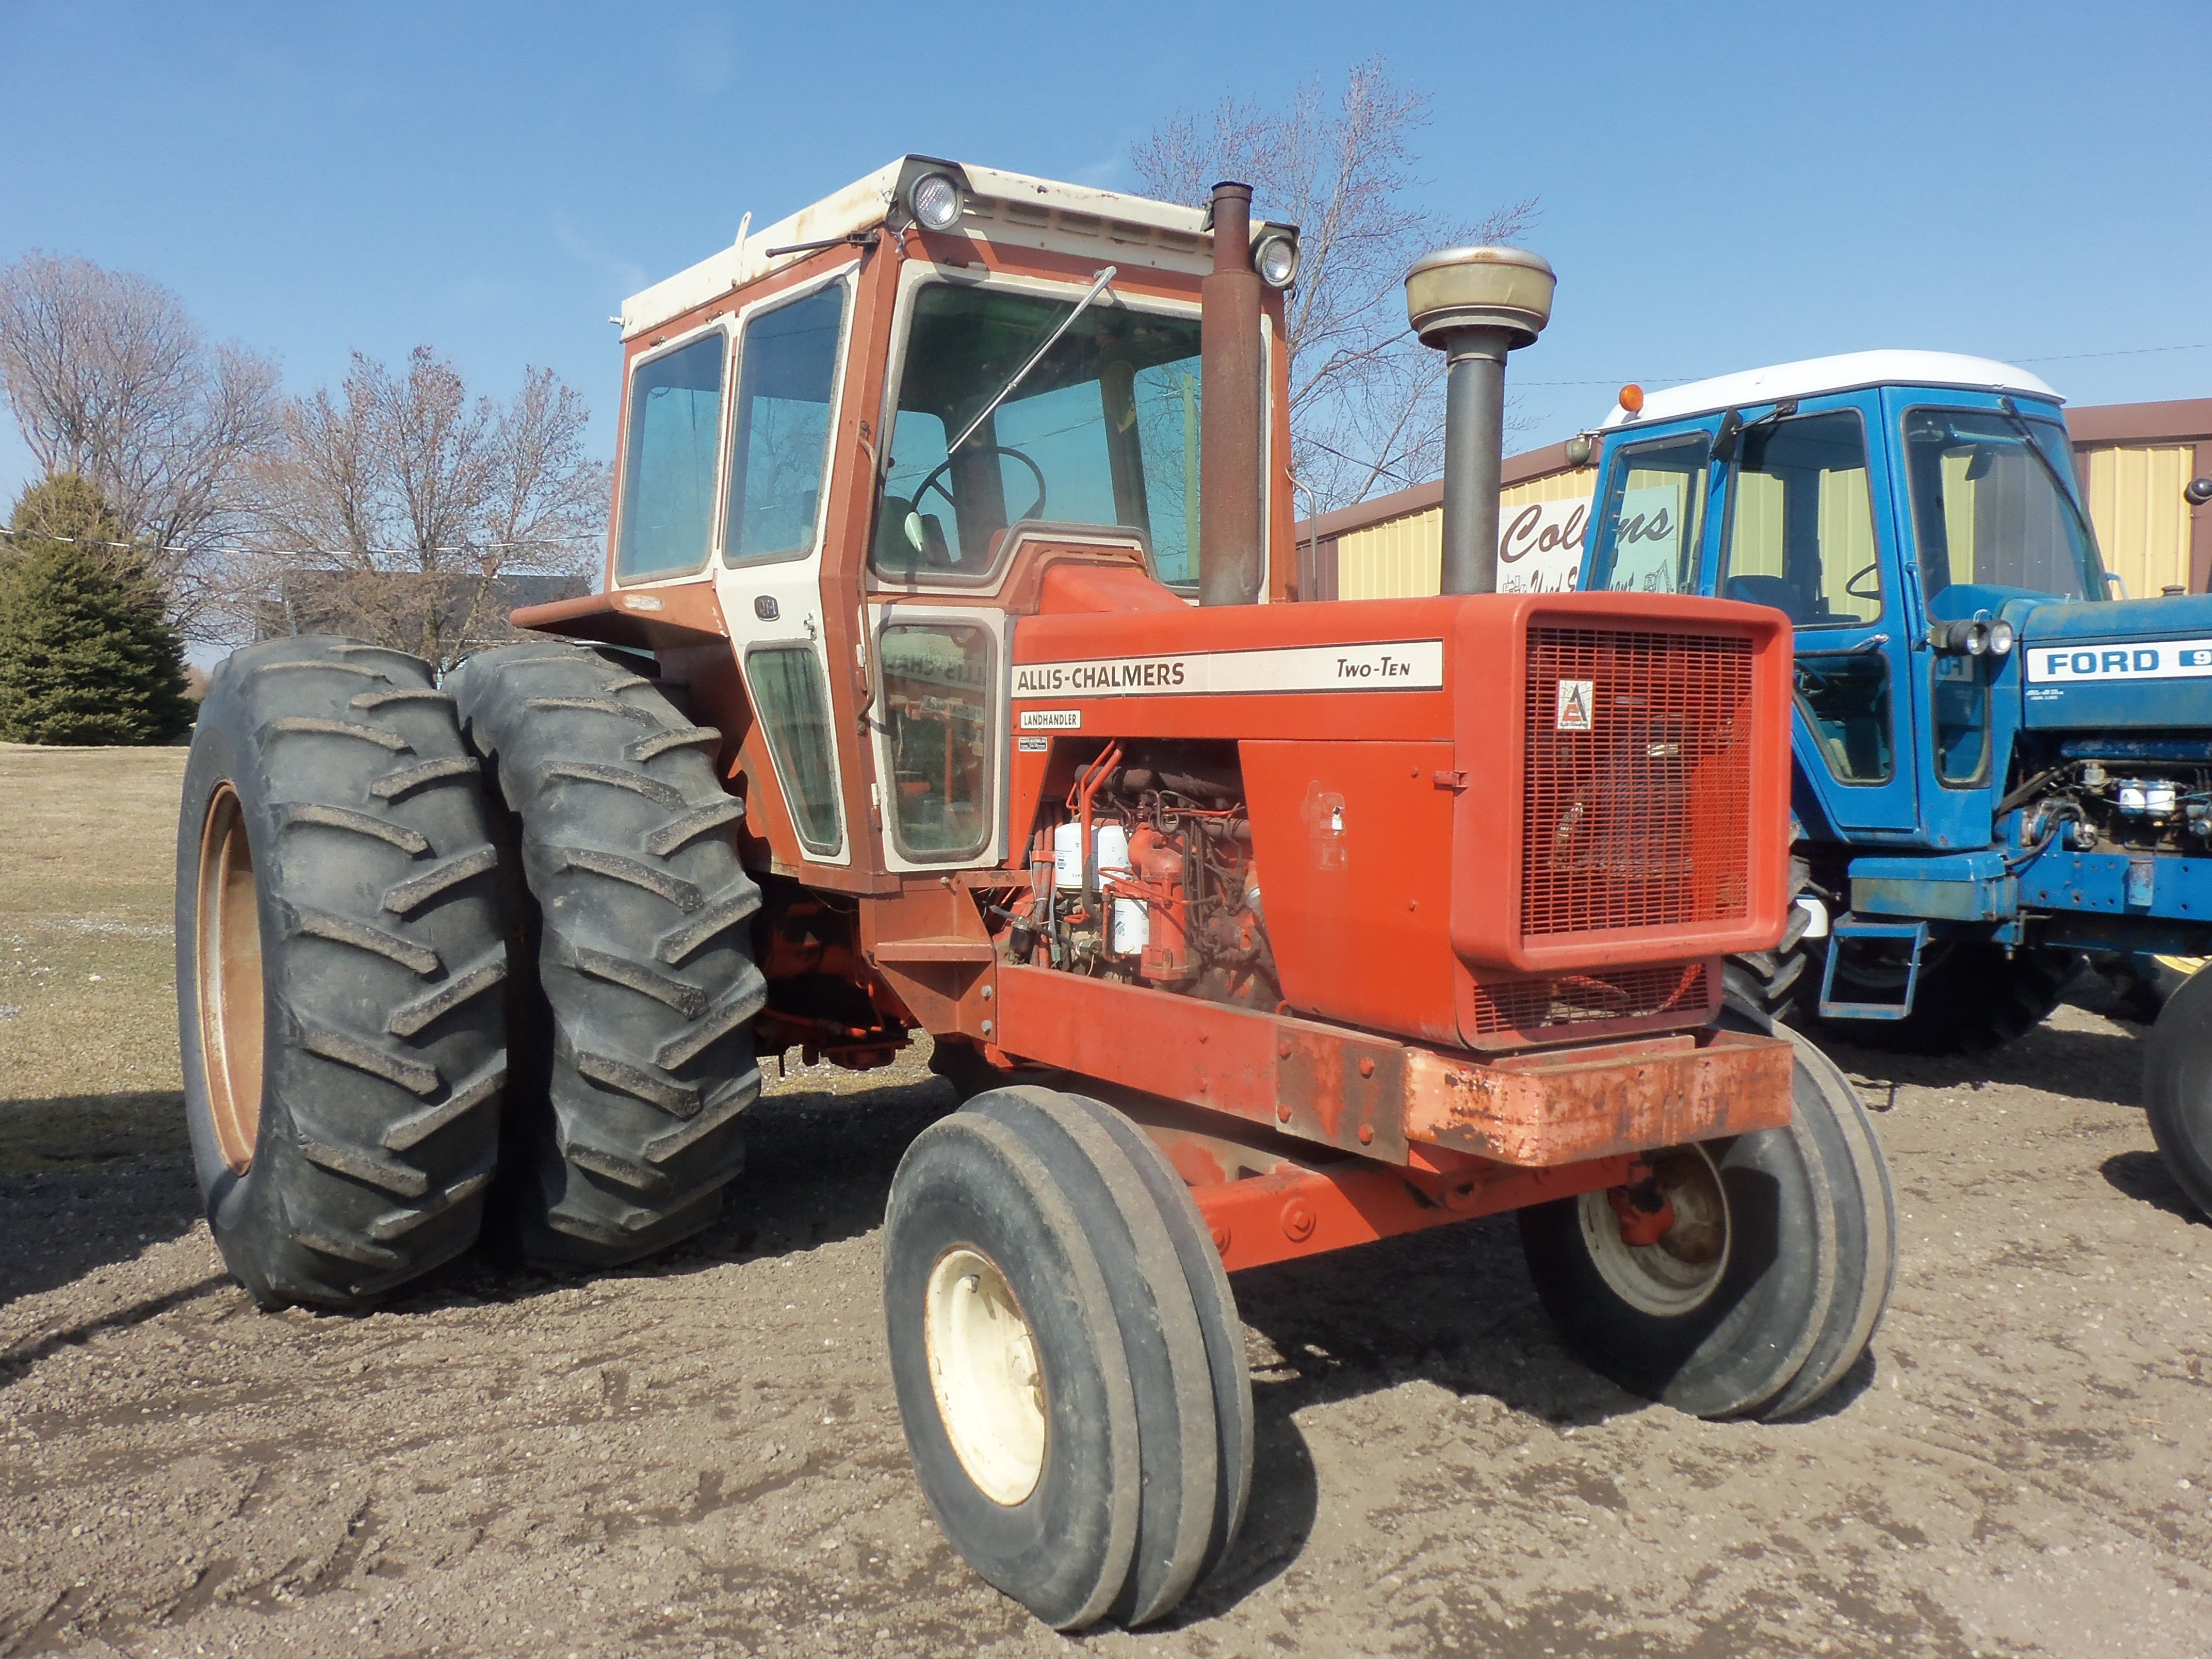 122hp Allis Chalmers 210 or Two Ten   Allis-Chalmers ...